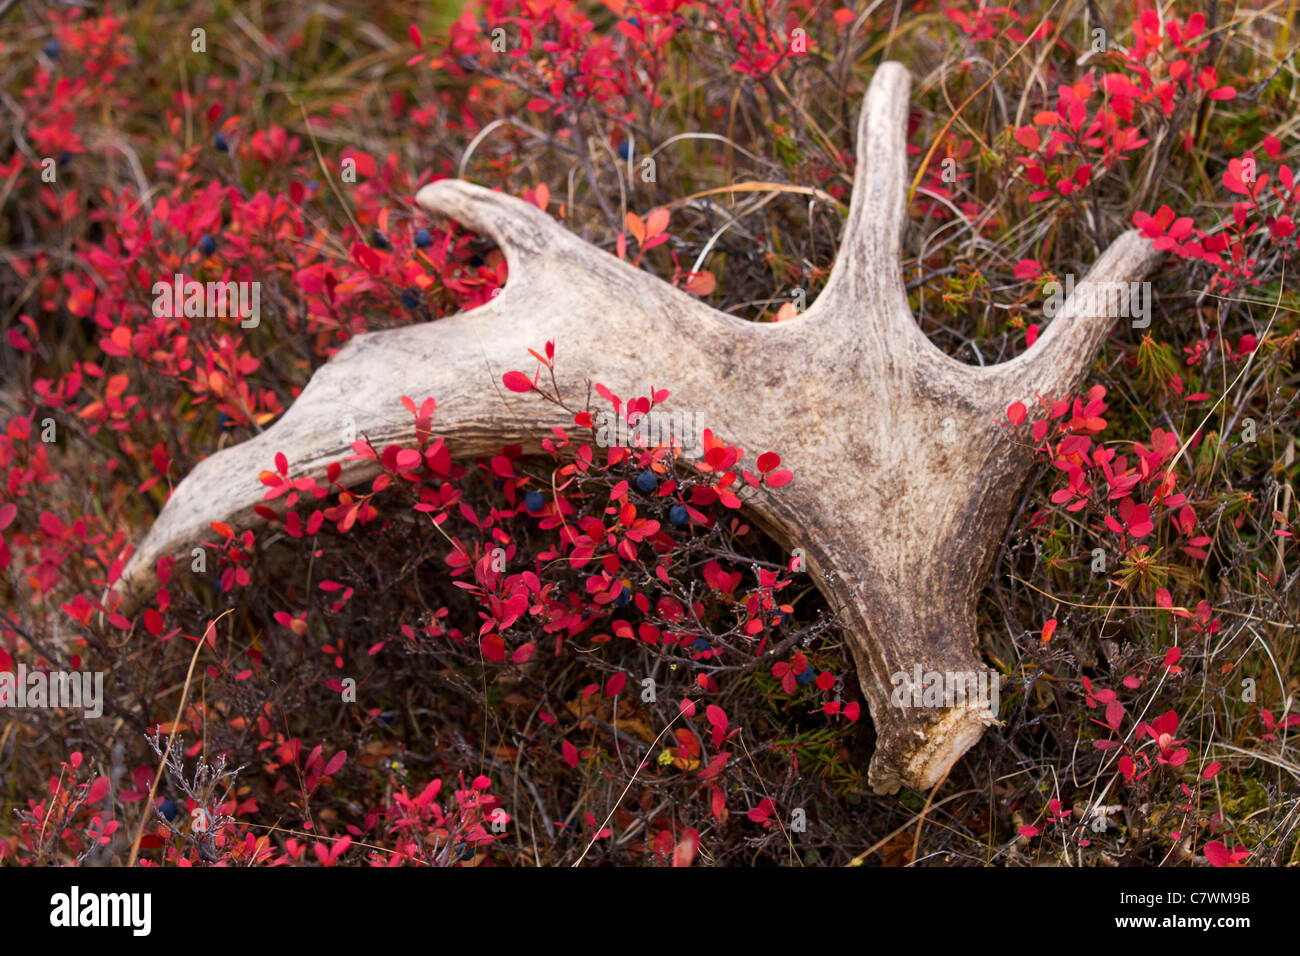 Bois d'orignal, le parc national Denali, en Alaska. Photo Stock